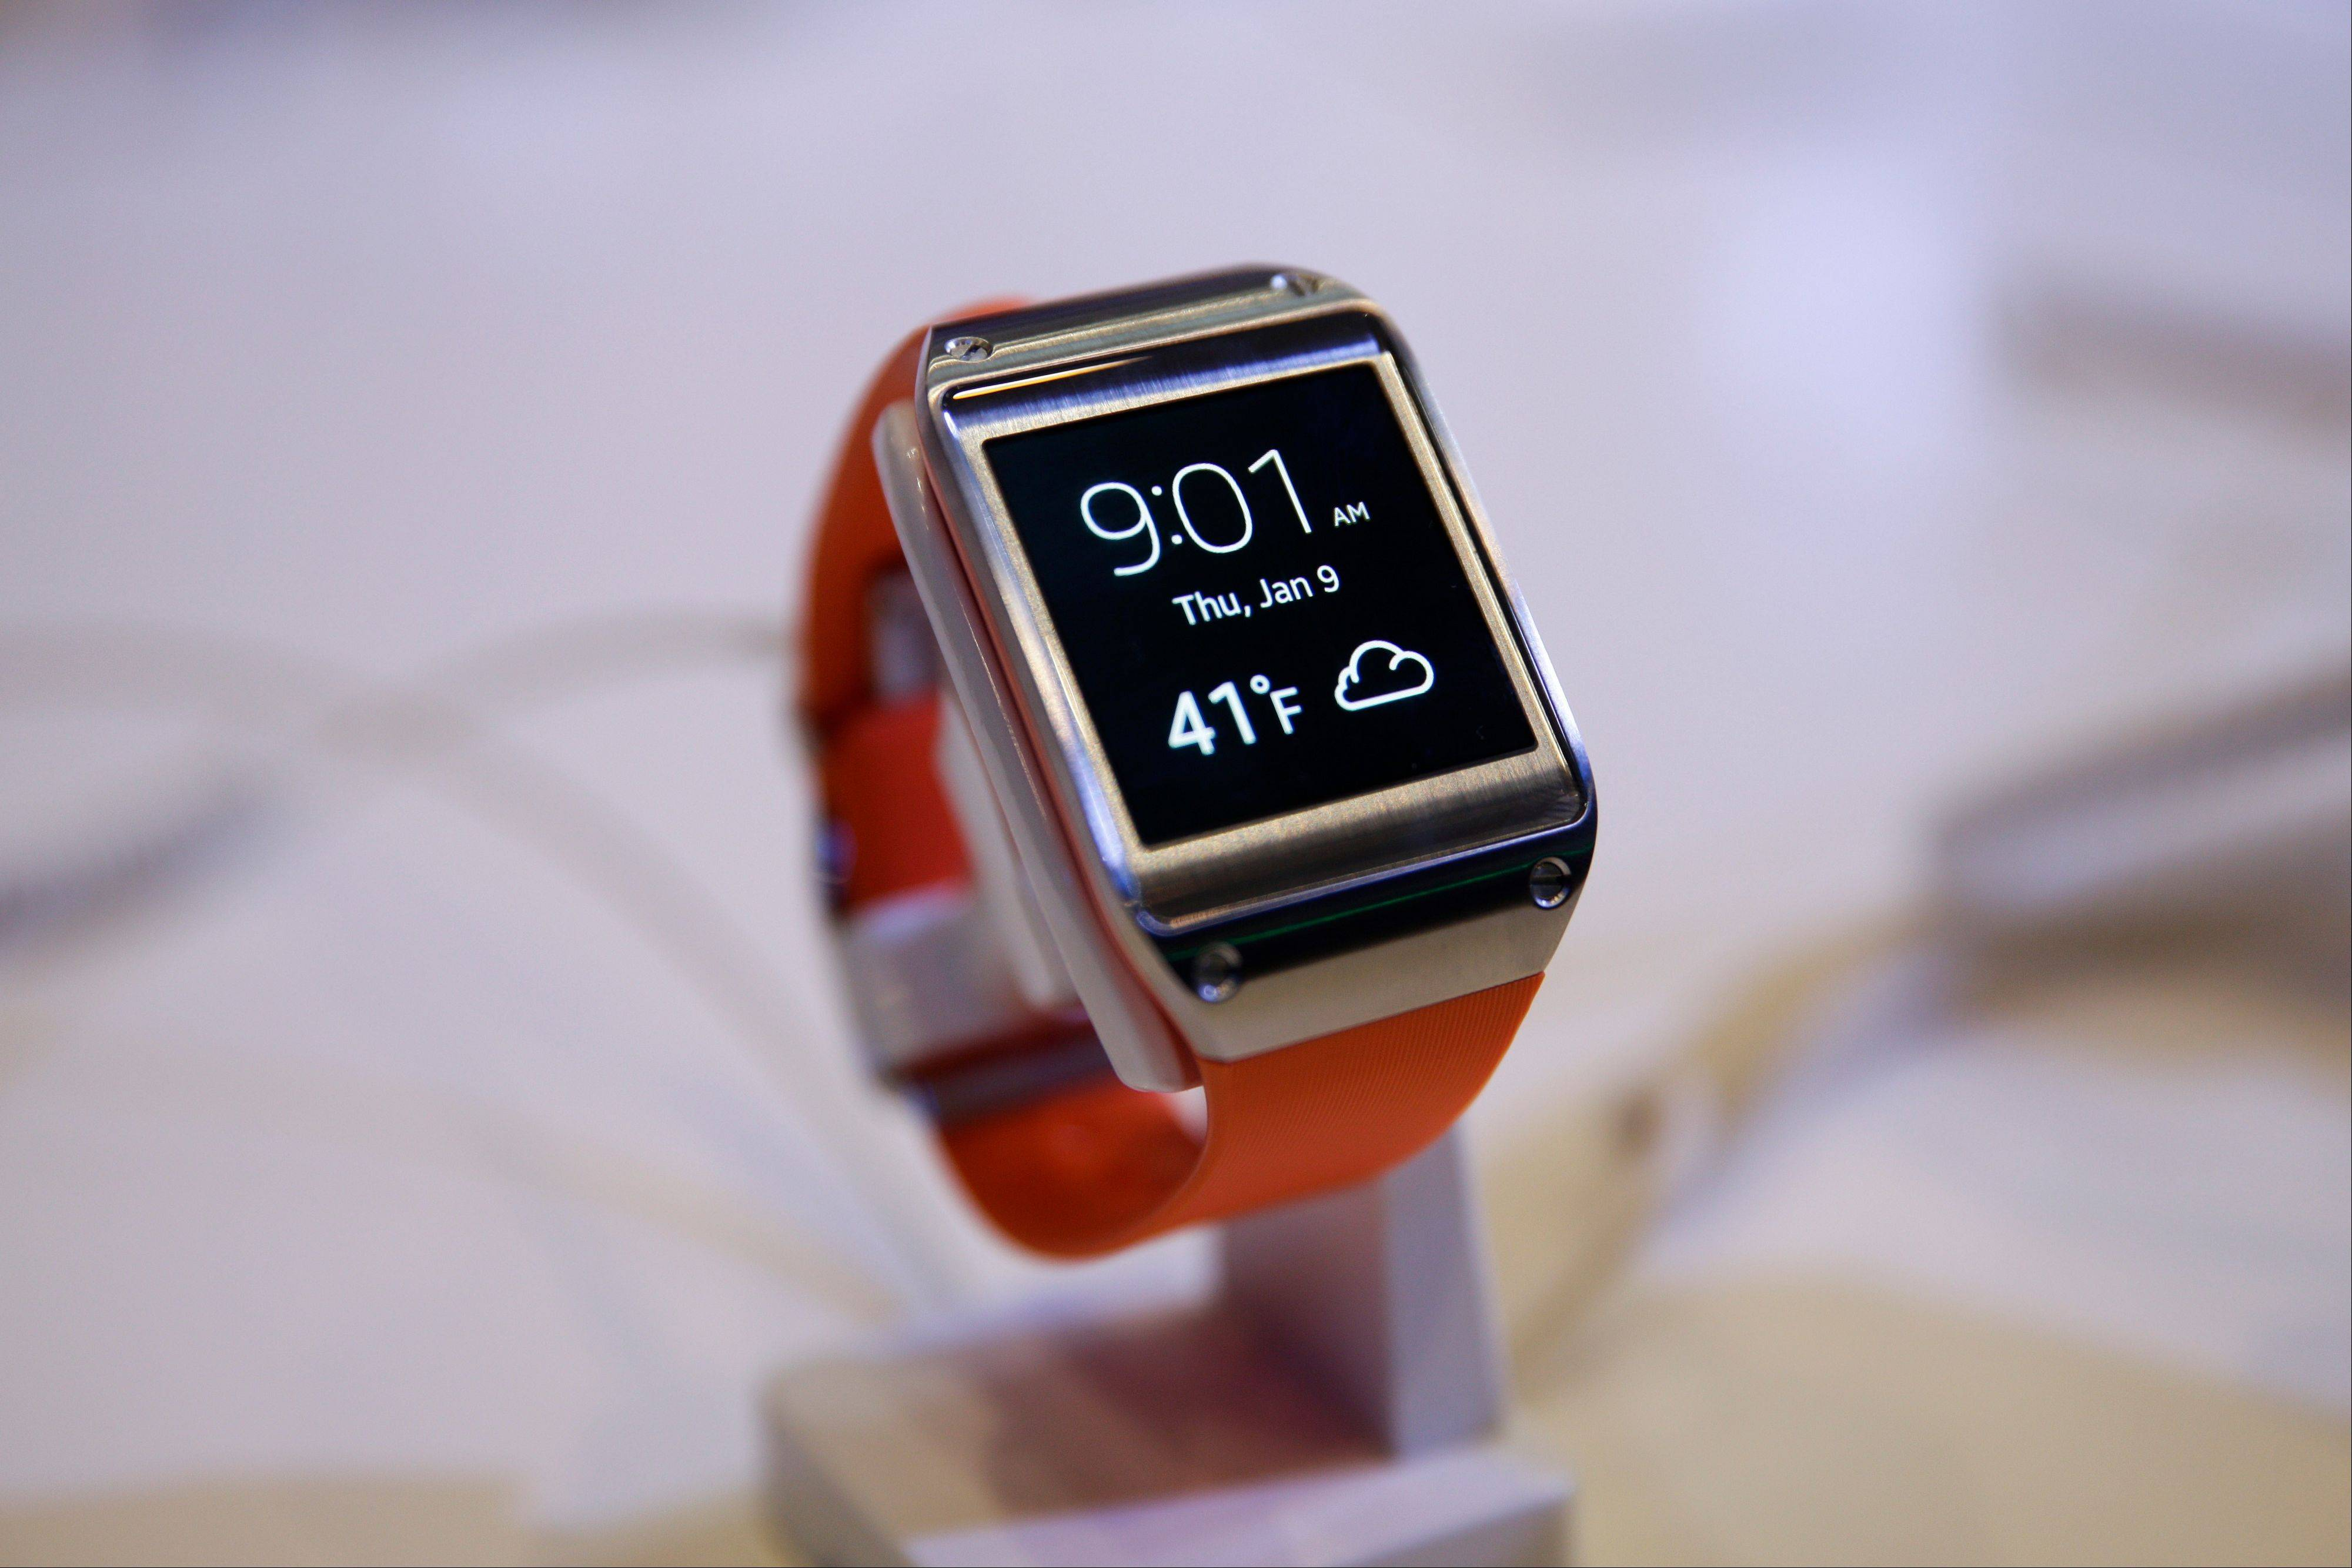 A Samsung Galaxy Gear smartwatch is displayed at the International Consumer Electronics Show. As technology gets more sophisticated, some owners are left in a state of confusion.